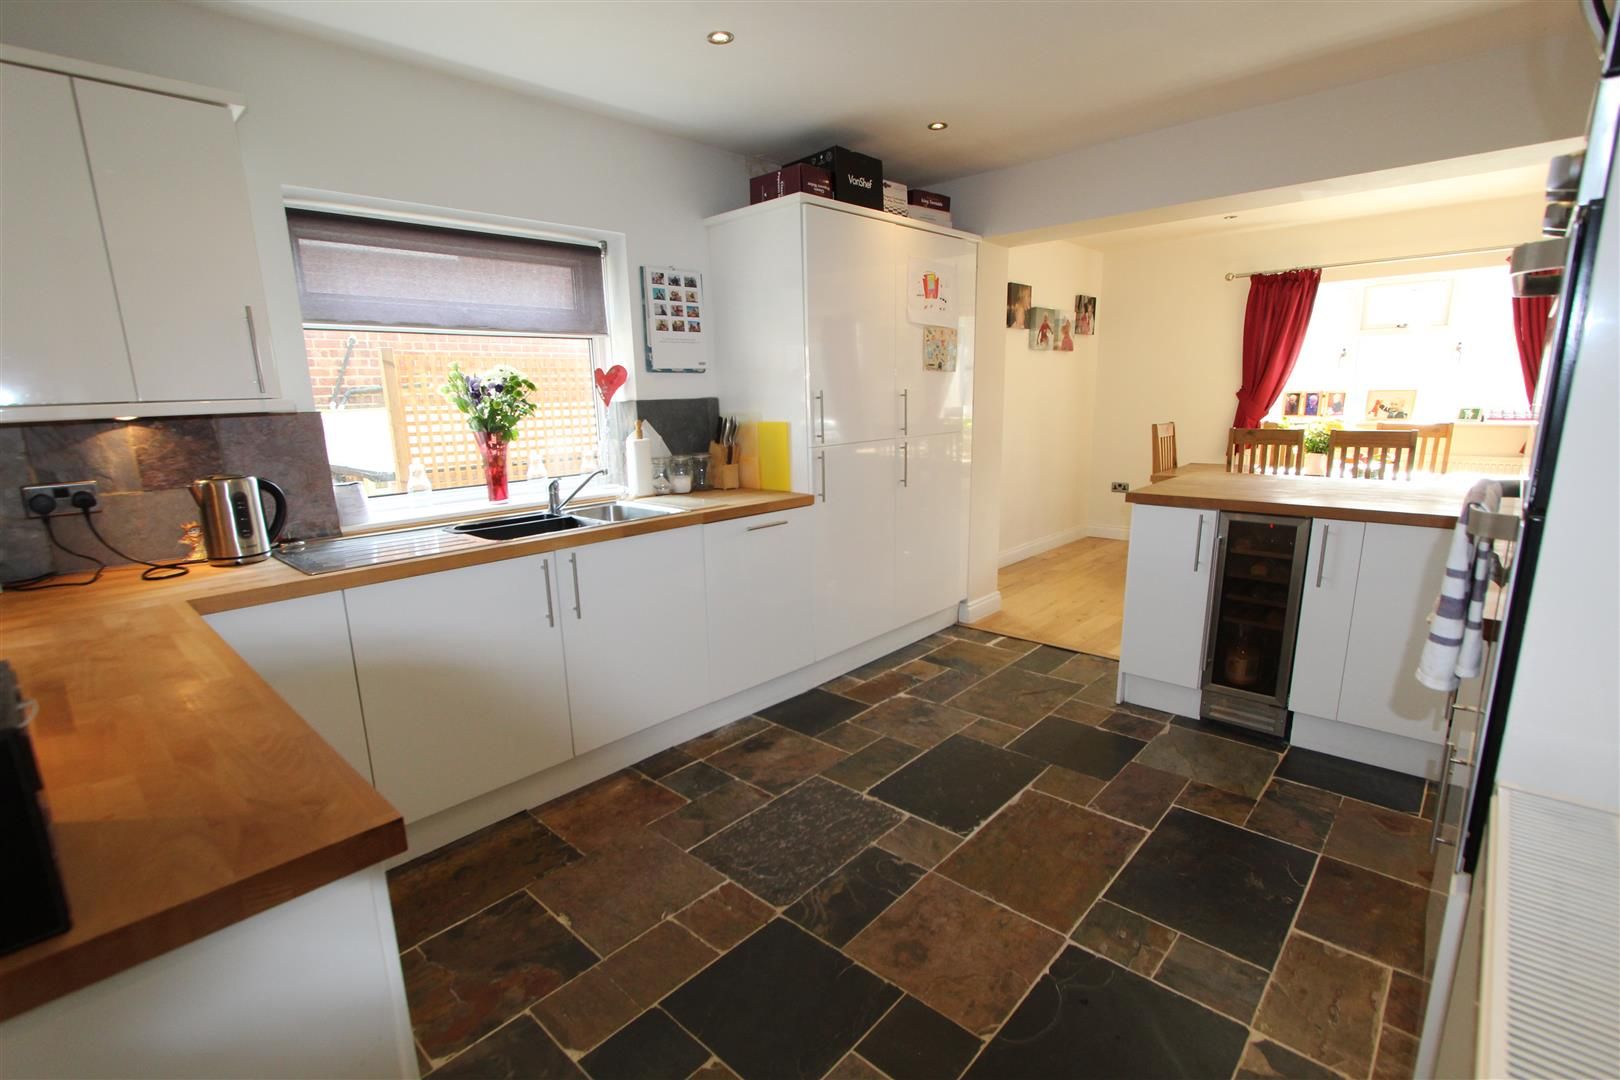 3 Bedroom Semi Detached House For Sale In Belper